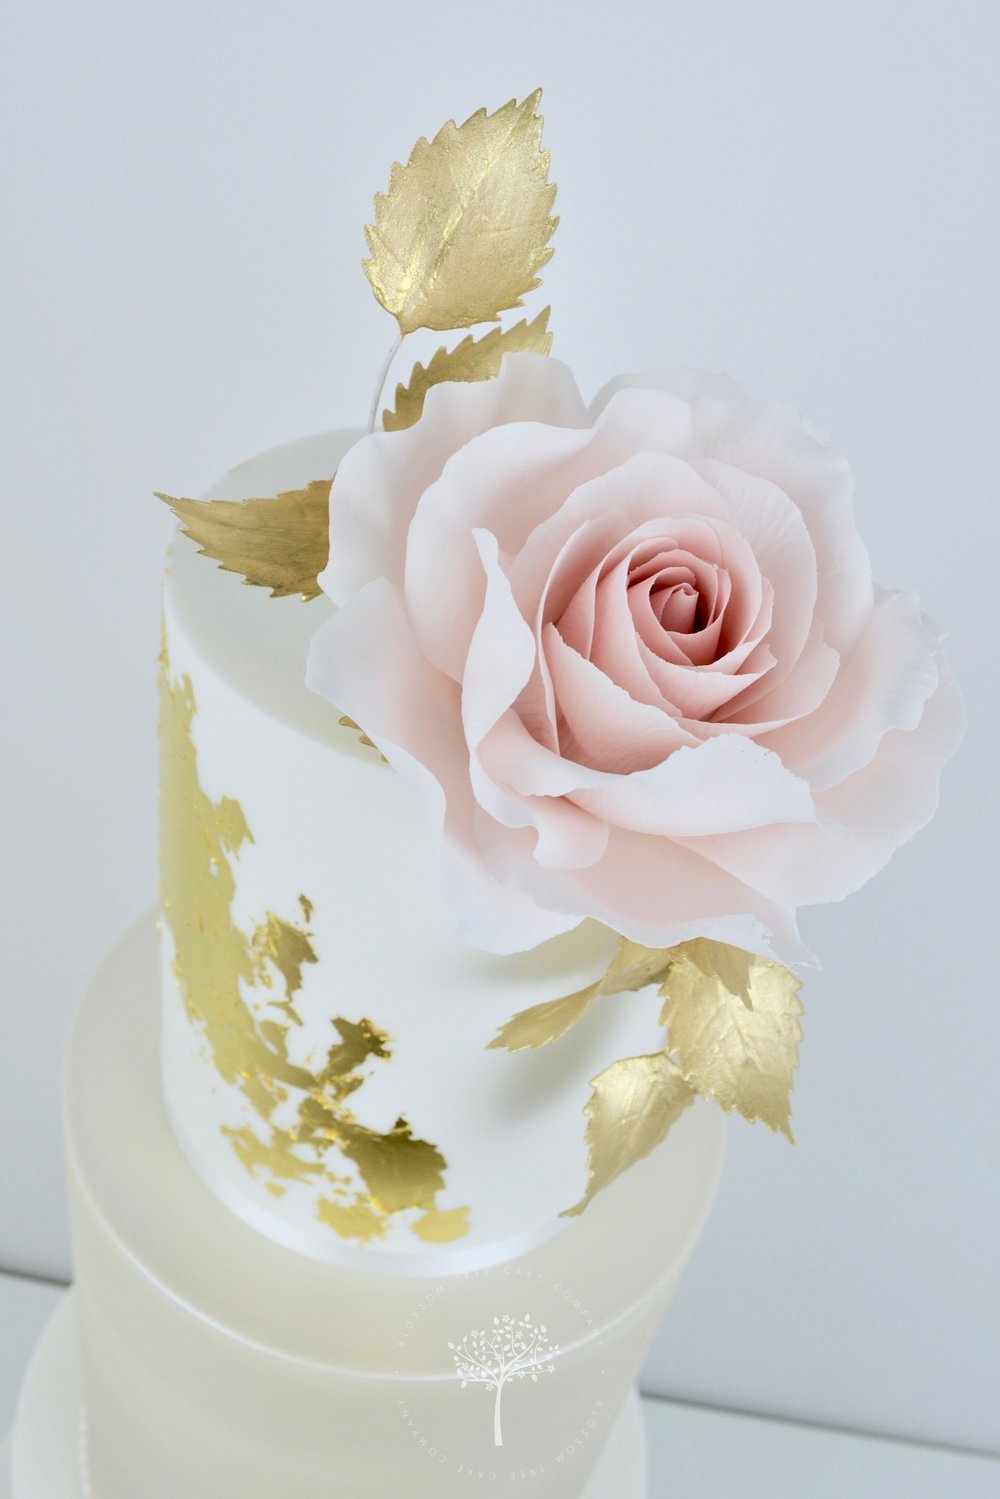 Blush Rose and Champagne wedding cake by Blossom Tree Cake Company Harrogate North Yorkshire - top sugar rose.jpg